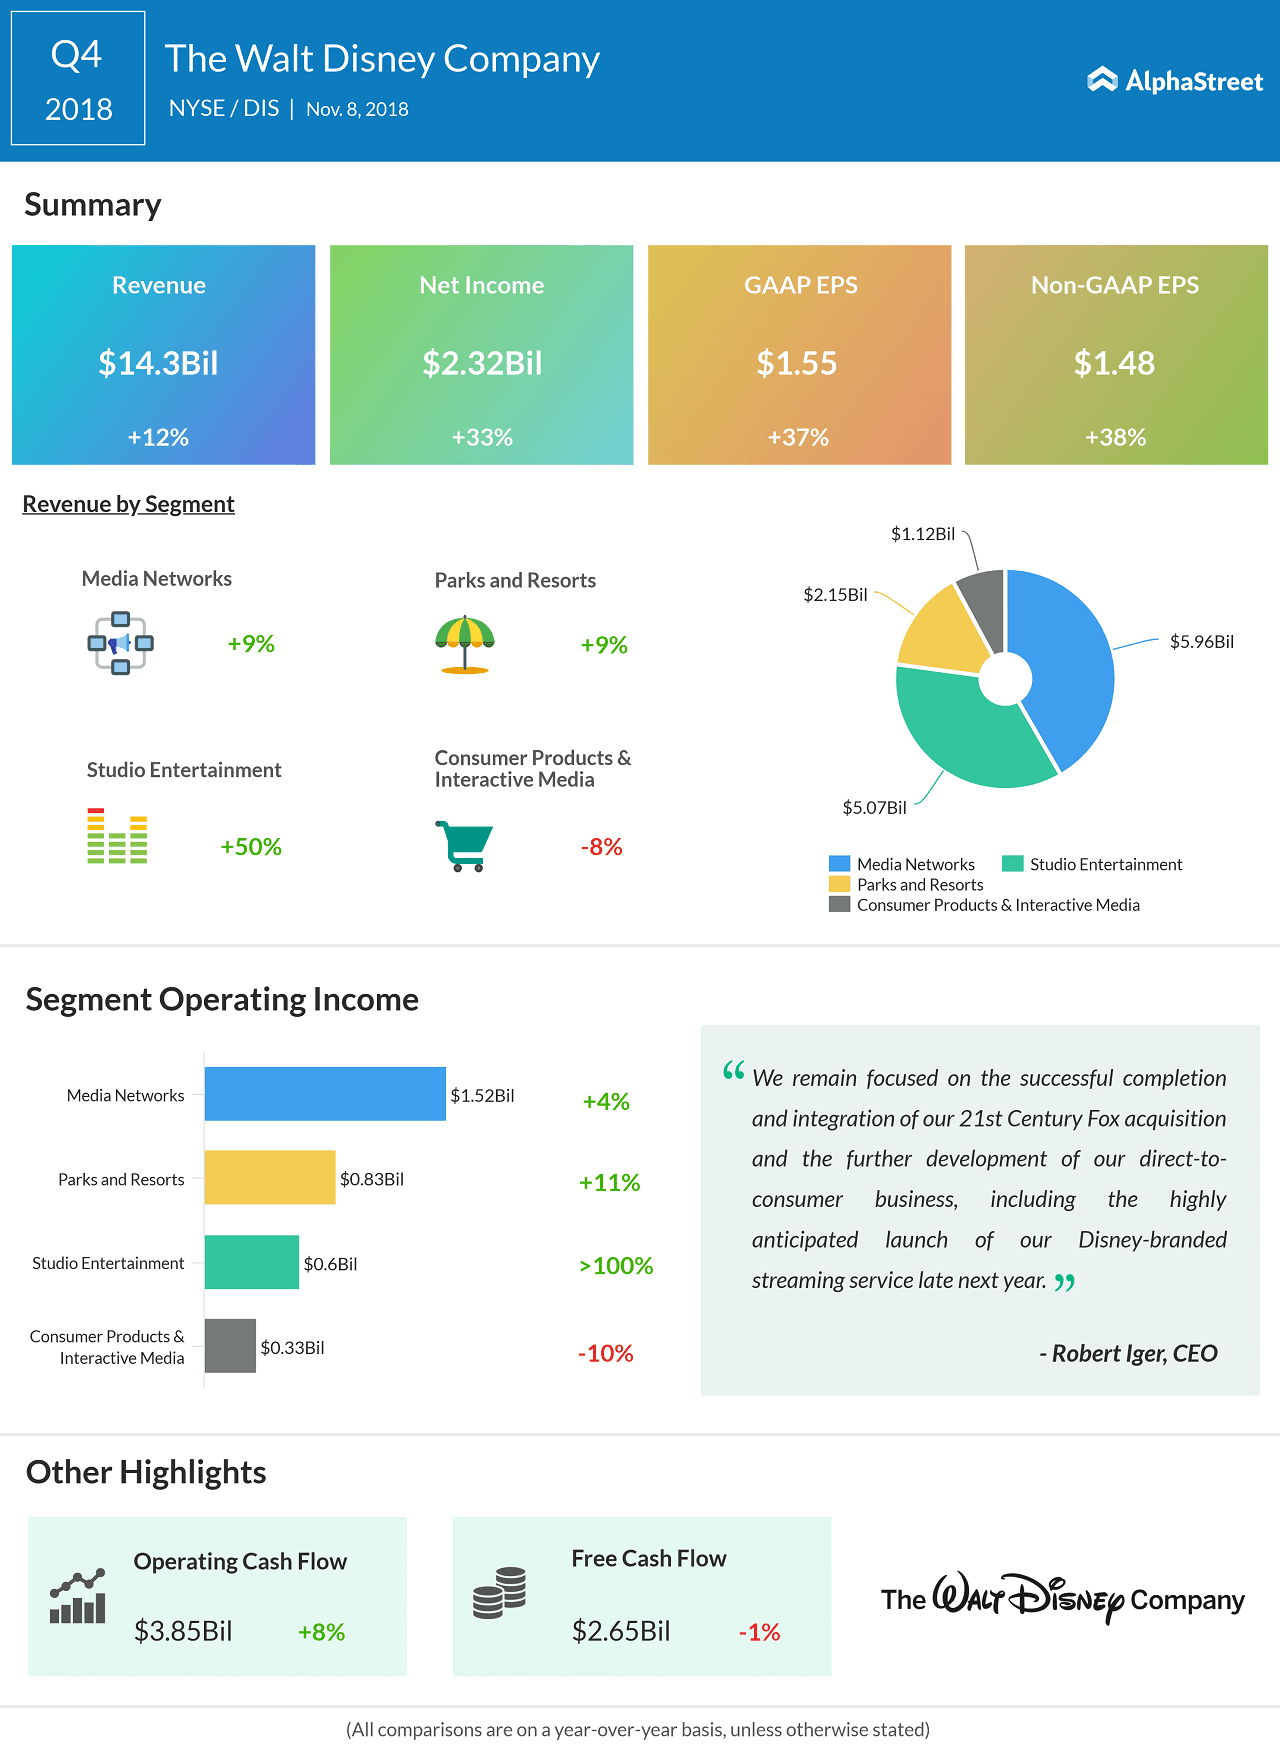 The Walt Disney Company Q4 2018 earnings infographic